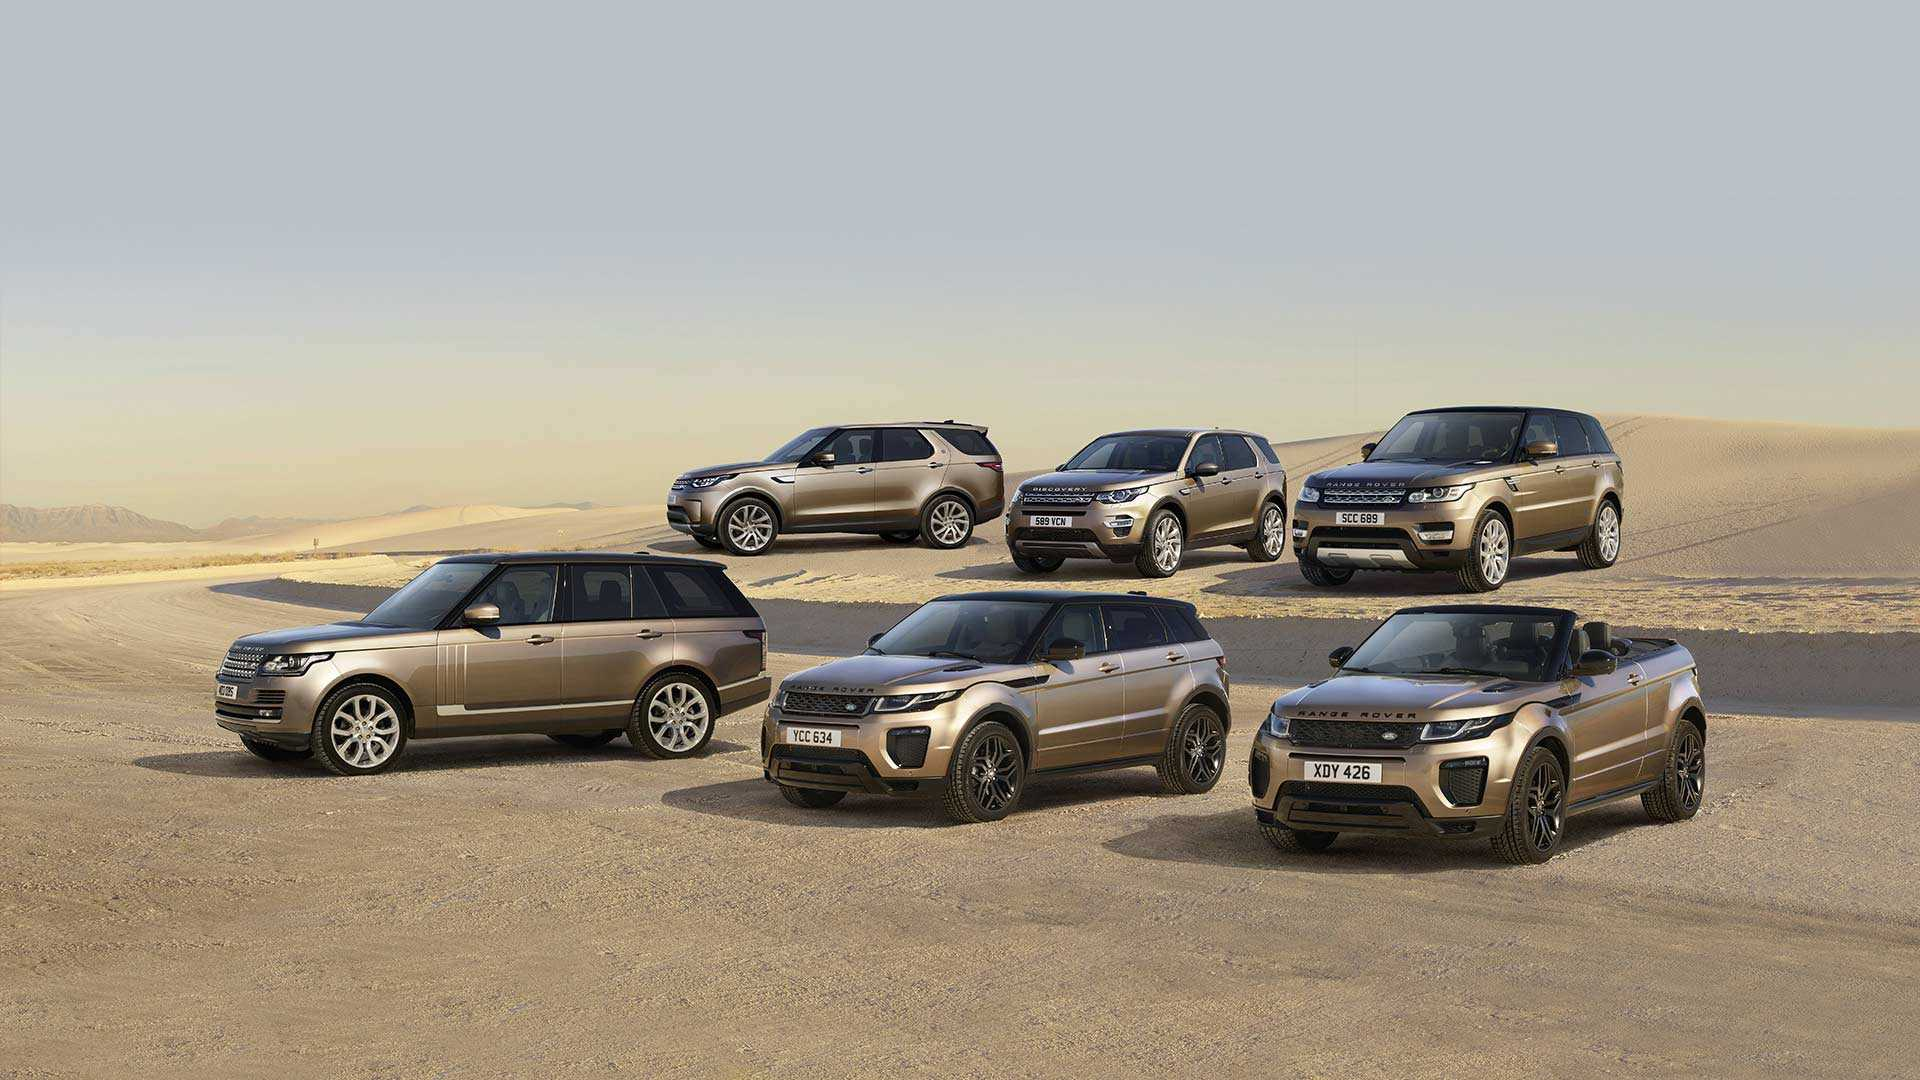 Used Land Rover and Range Rover for sale at Lookers